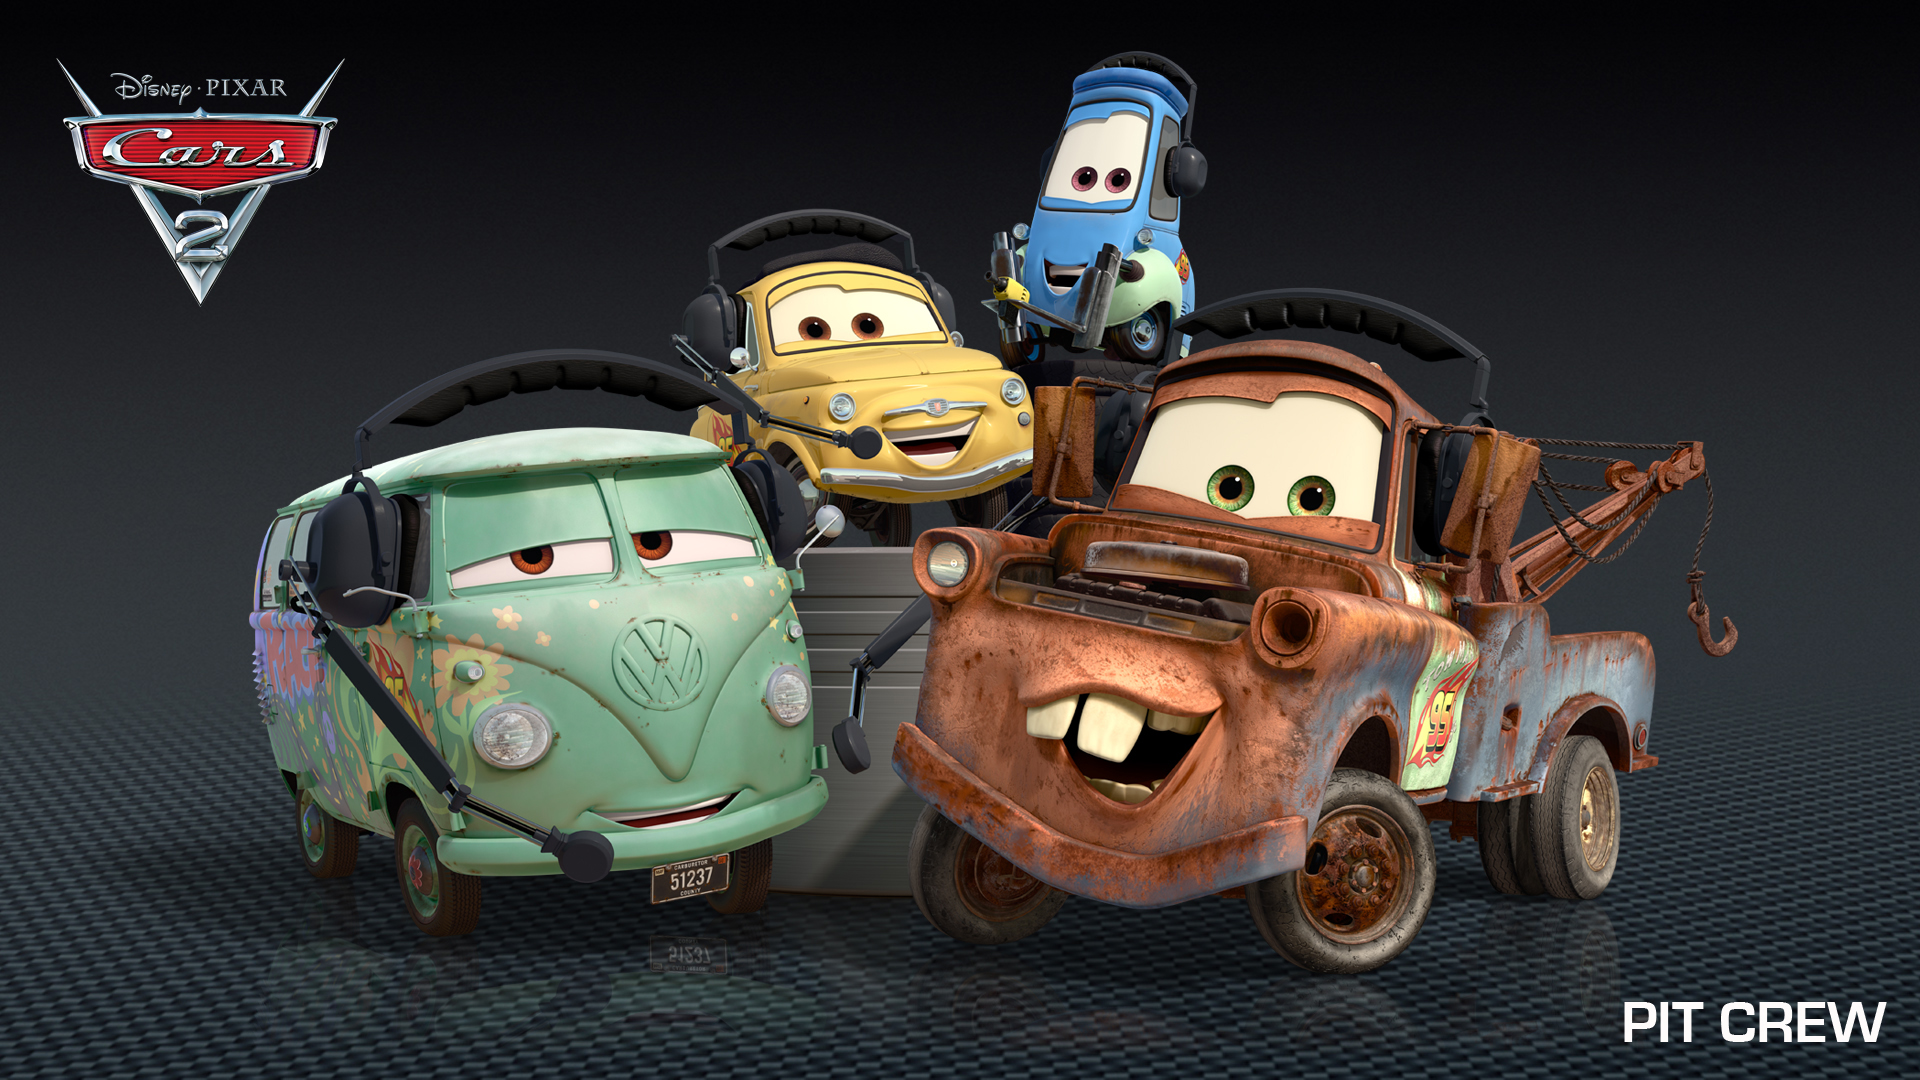 cars 2 characters images descriptions revealed